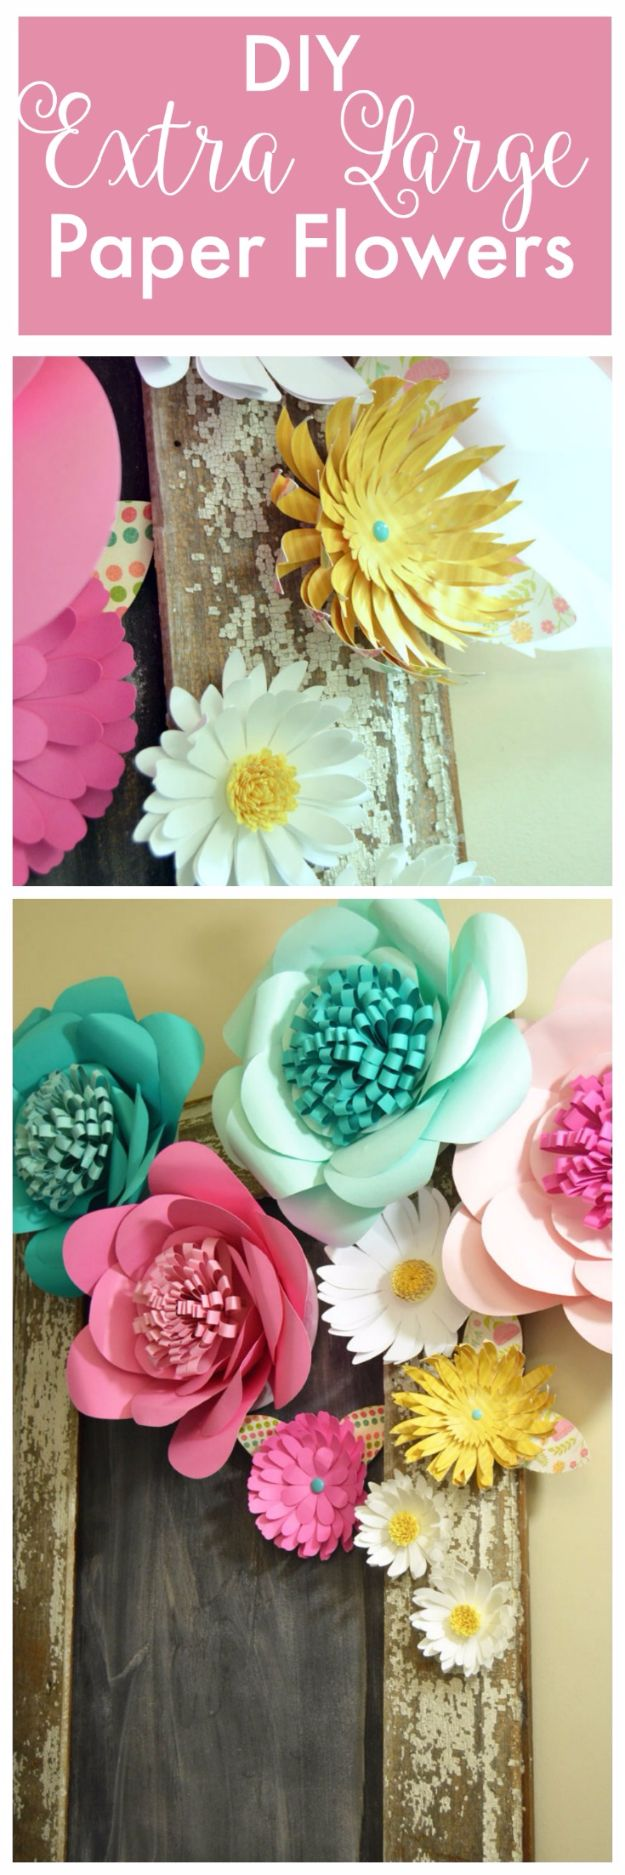 DIY Paper Flowers - DIY Extra Large Paper Flowers - How To Make A Paper Flower - Large Wedding Backdrop for Wall Decor - Easy Tissue Paper Flower Tutorial for Kids - Giant Projects for Photo Backdrops - Daisy, Roses, Bouquets, Centerpieces - Cricut Template and Step by Step Tutorial http://diyjoy.com/diy-paper-flowers